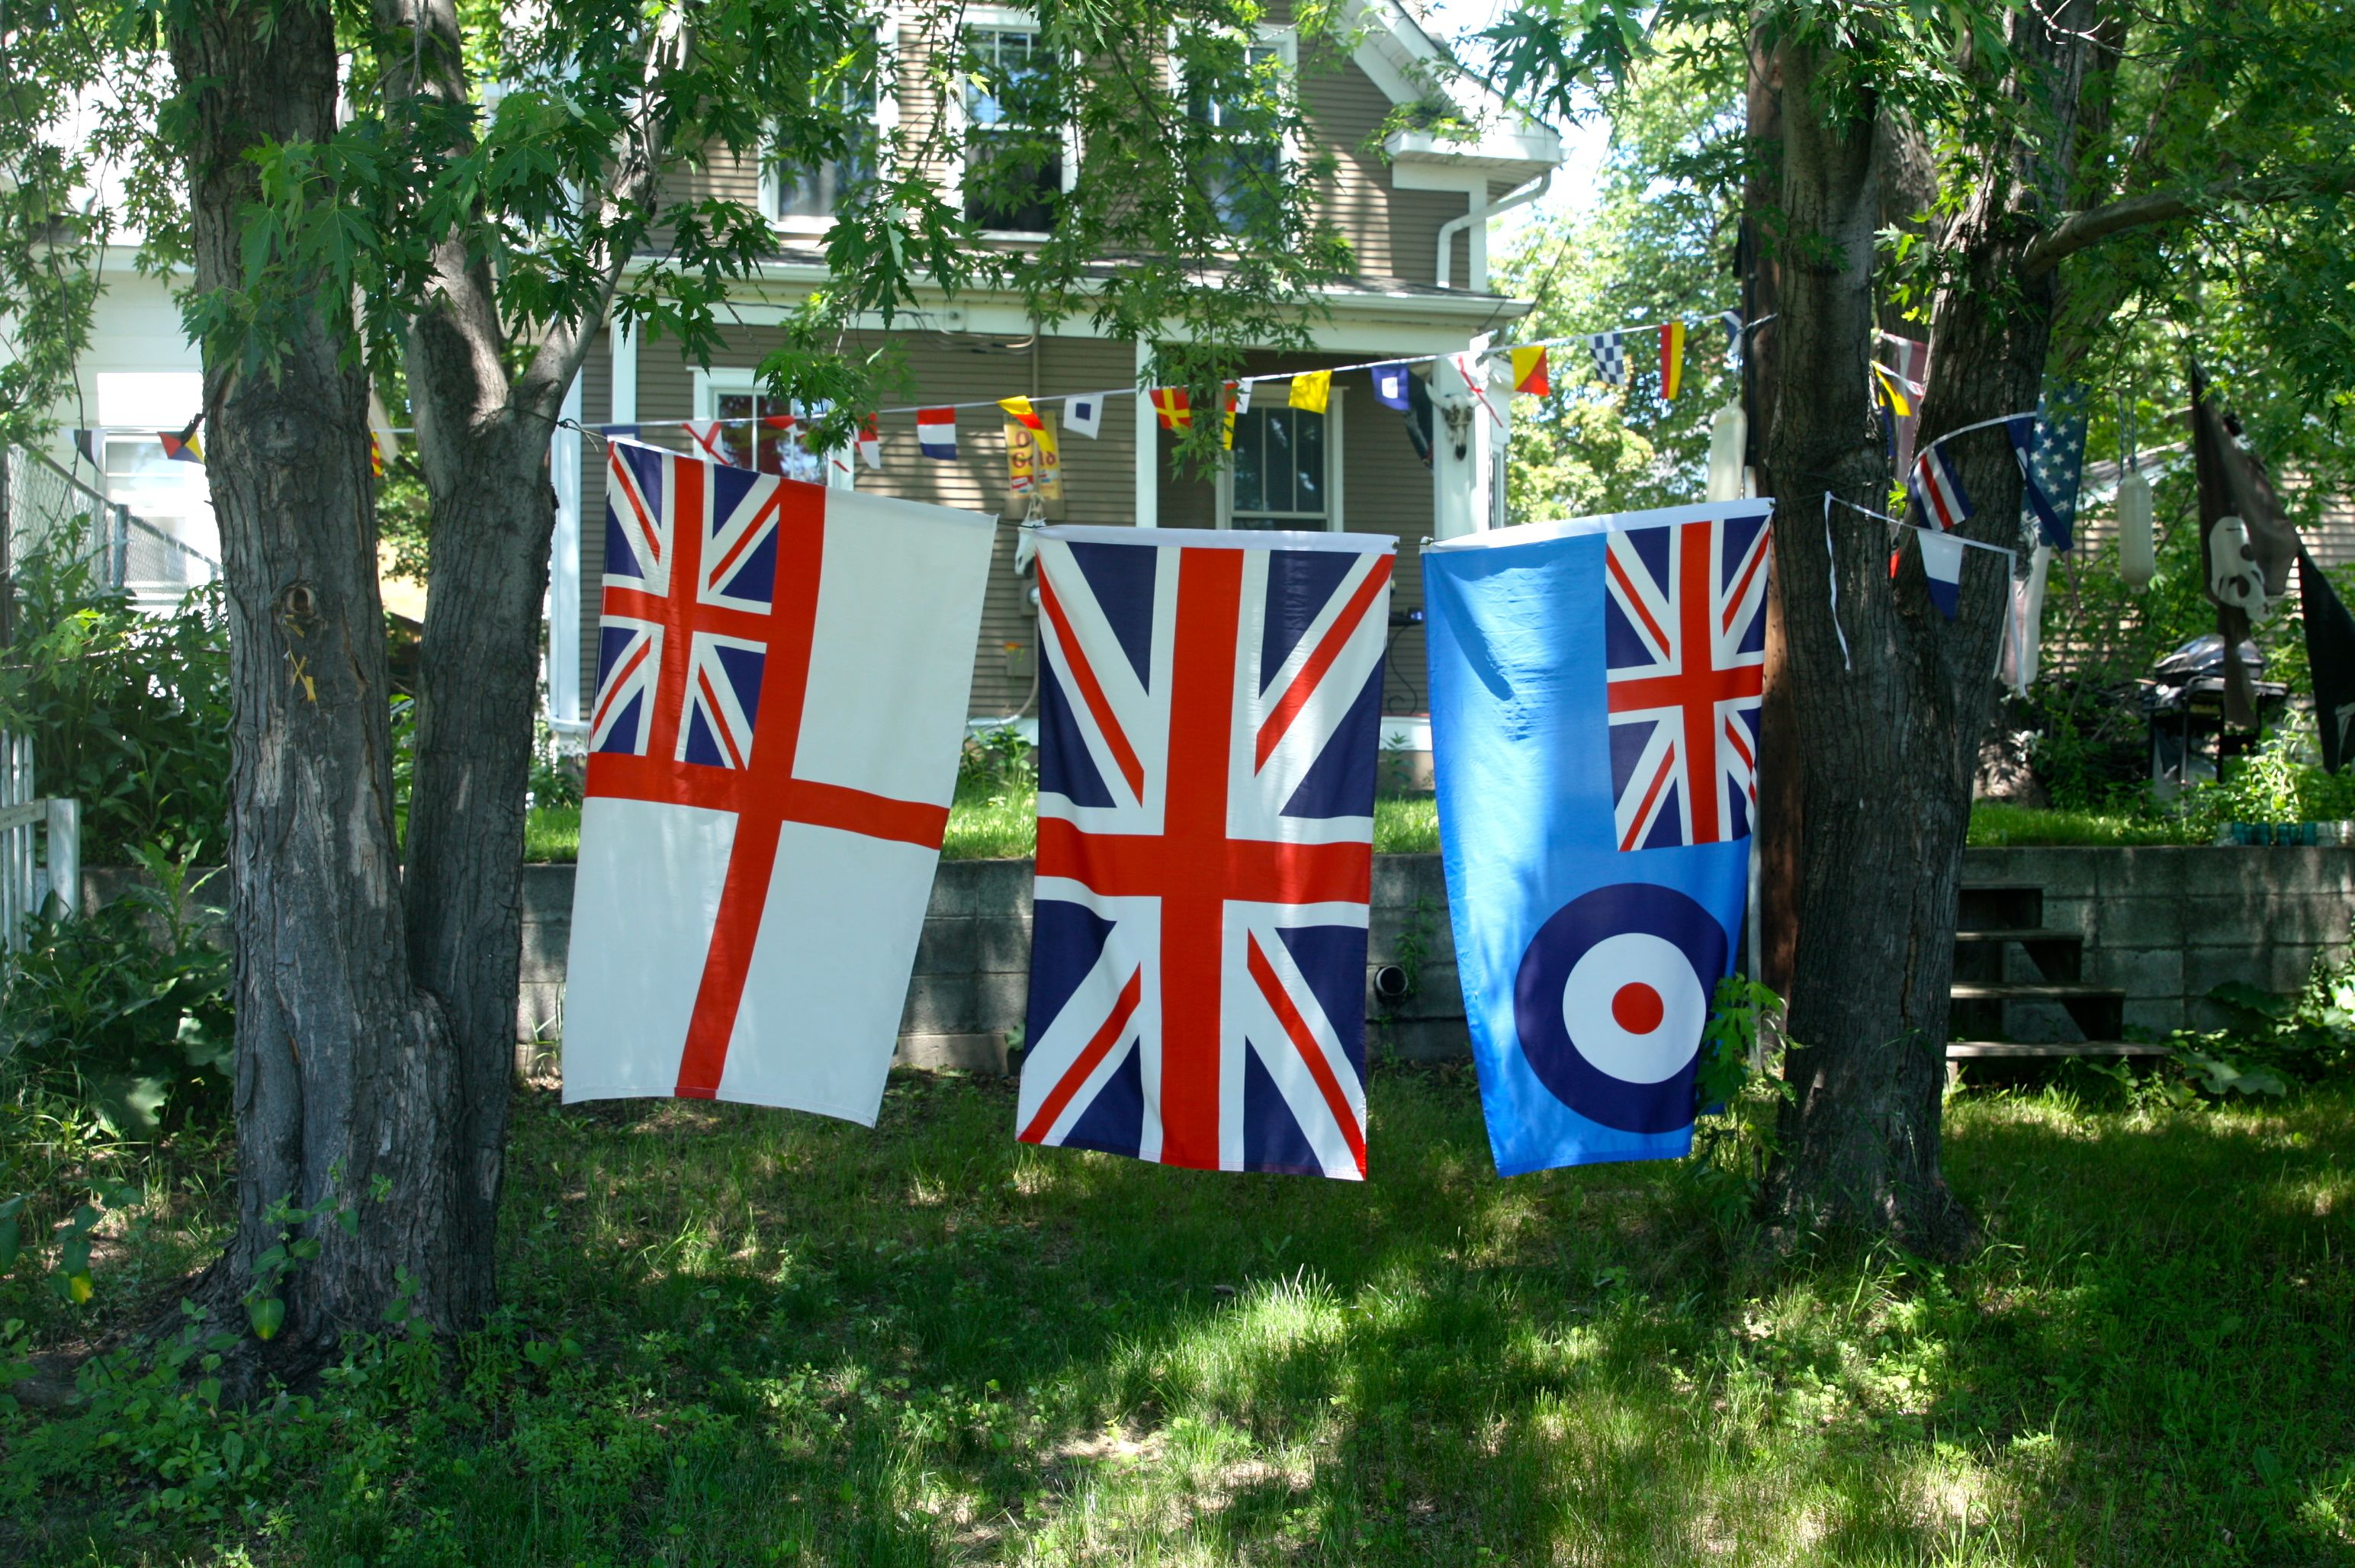 """The three flags, left to right, are the United Kingdom Naval Ensign """"White Ensign"""", the flag of the United Kingdom and Dhekelia, and the United Kingdom Royal Air Force Ensign flag."""